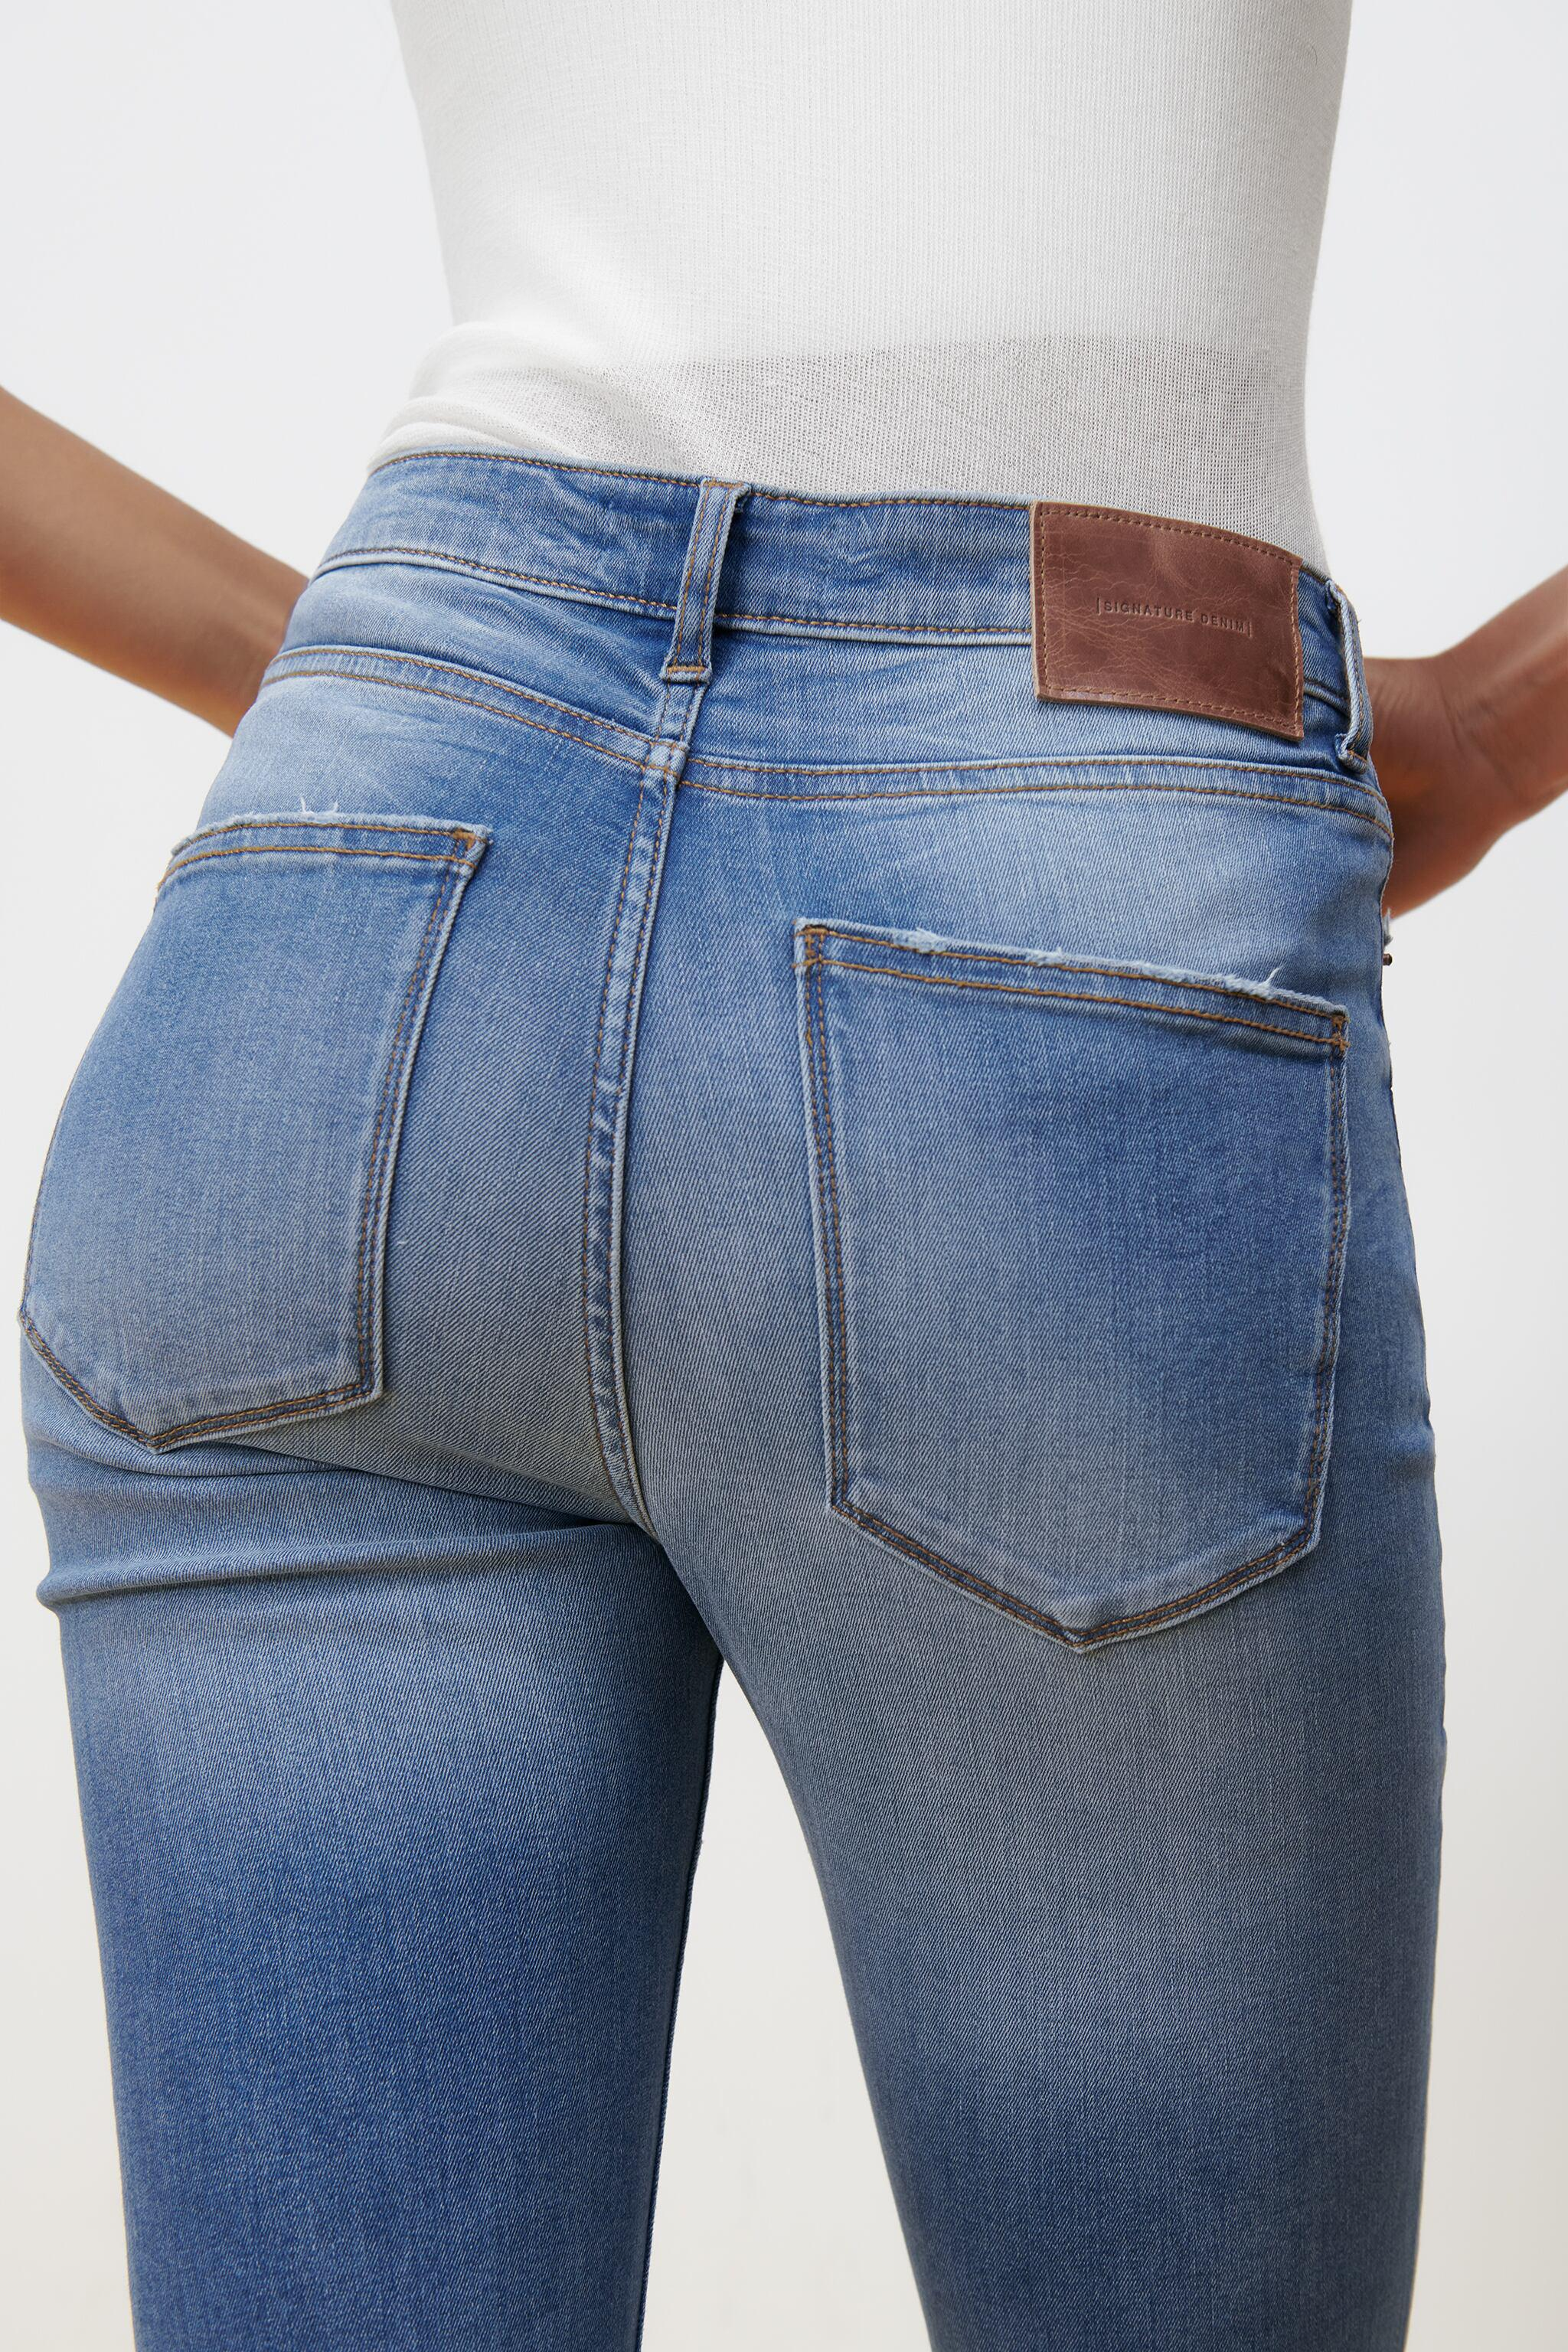 ZW THE SKINNY FLARE JEANS 3